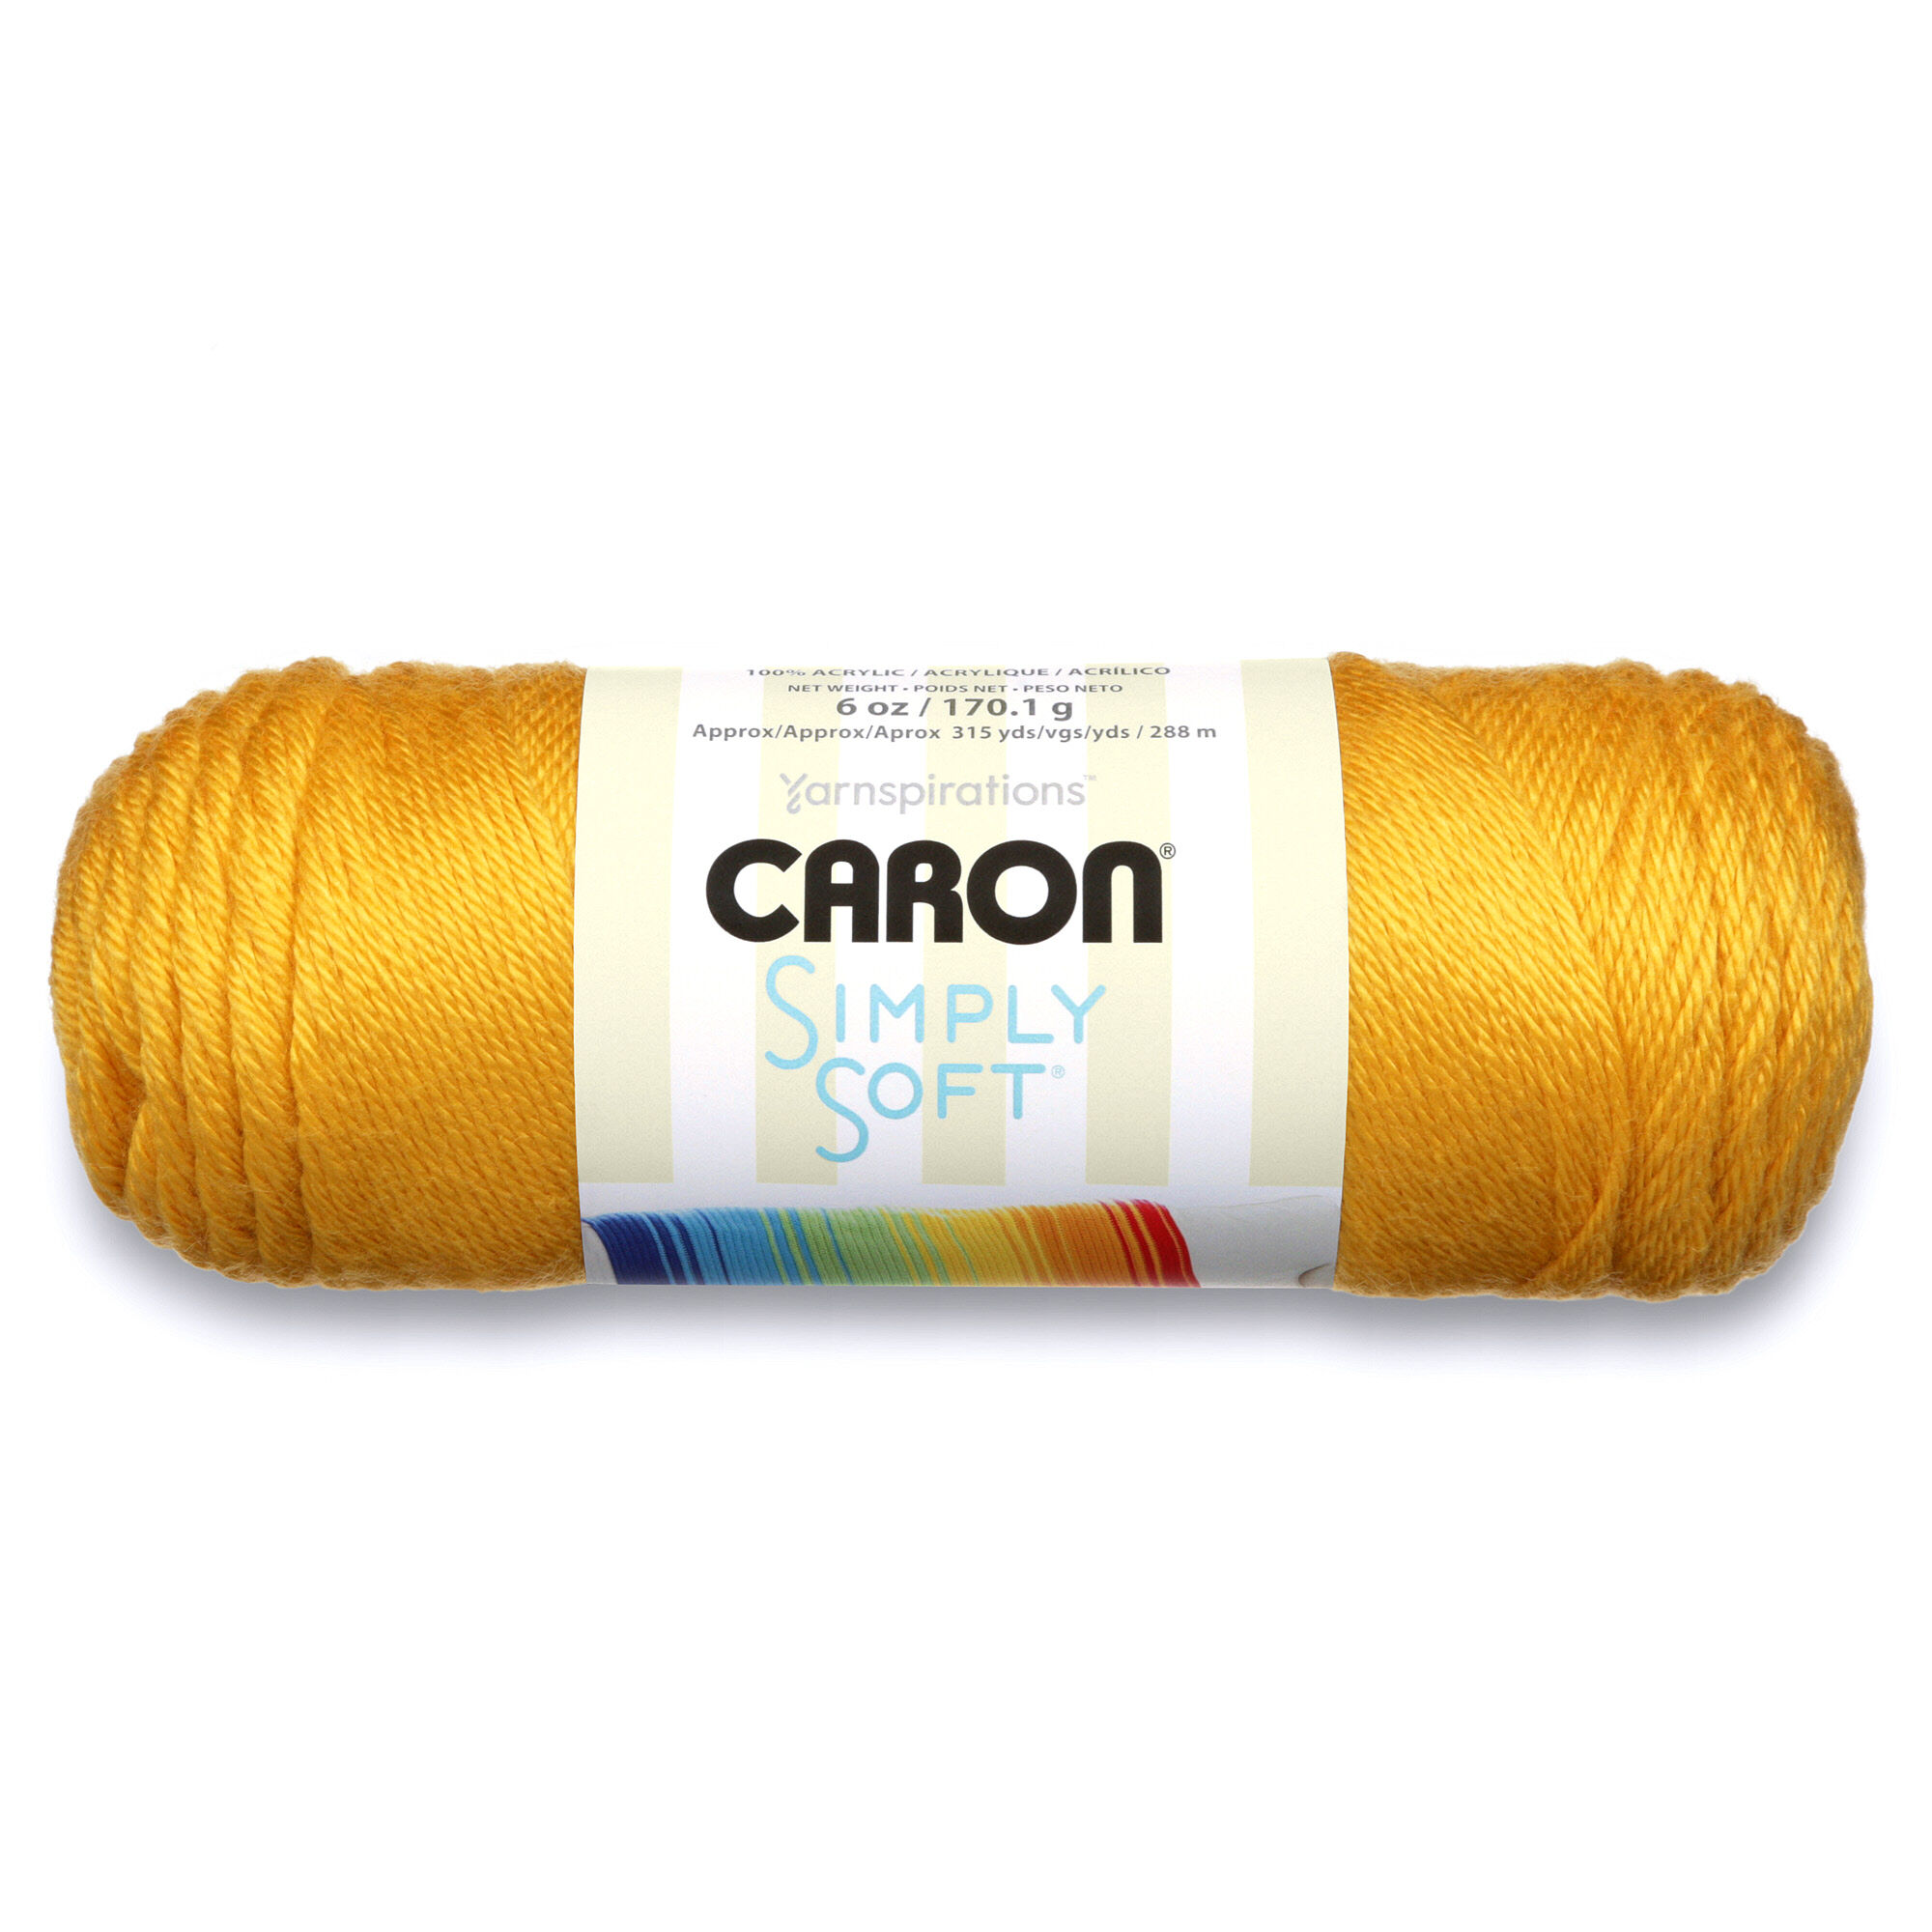 Caron Simply Soft Yarn, Gold